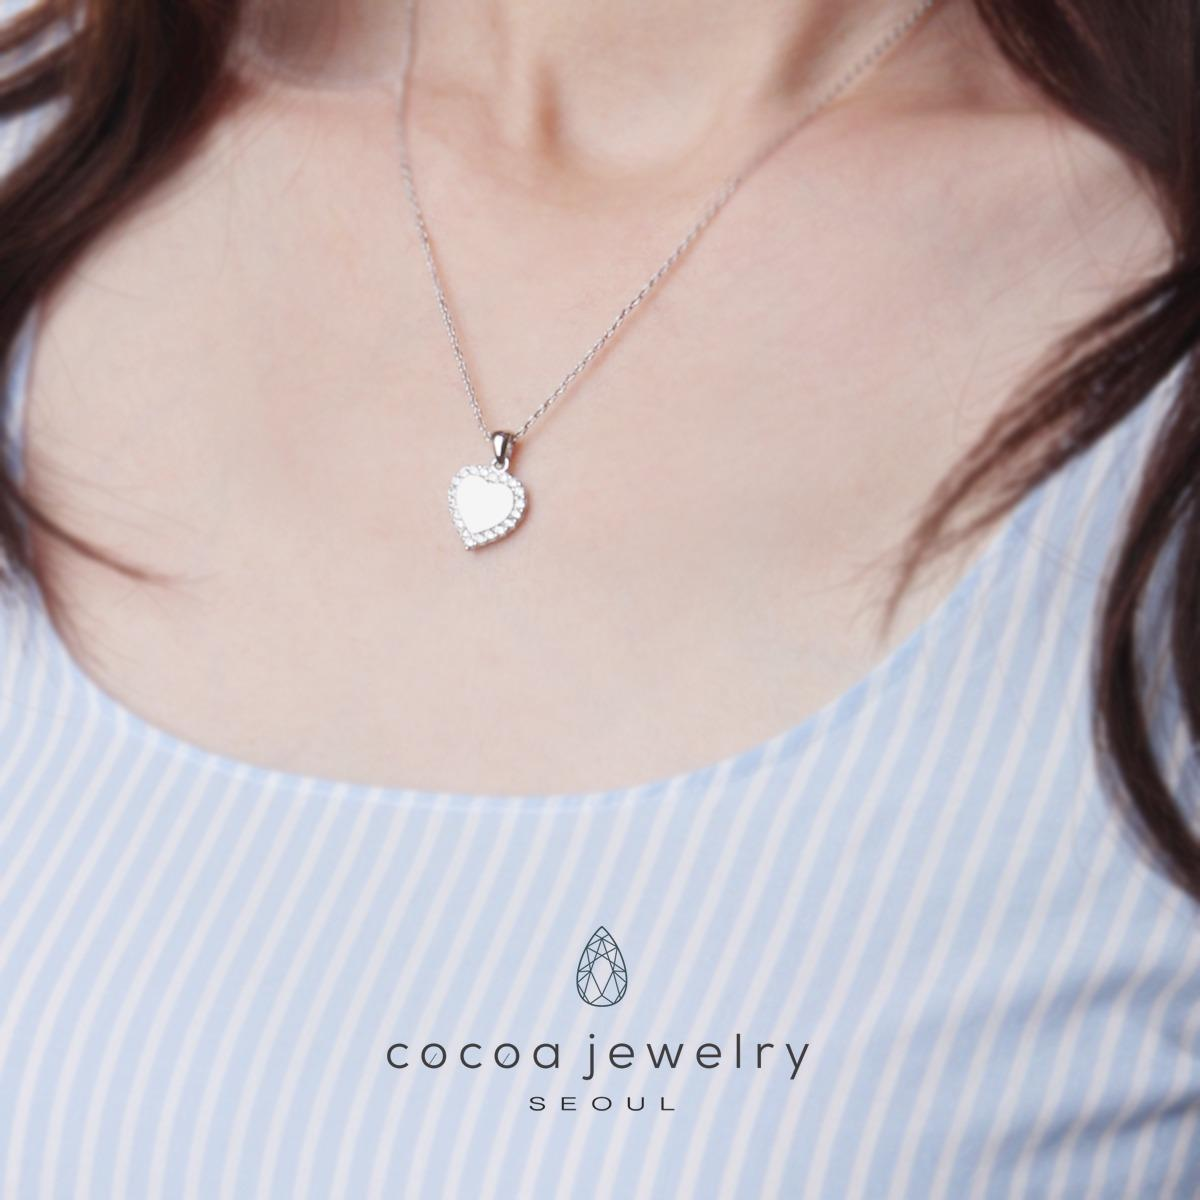 Lihat Cocoa Jewelry Light Up The Love Necklace Silver Color Dan Kalung Moon 4